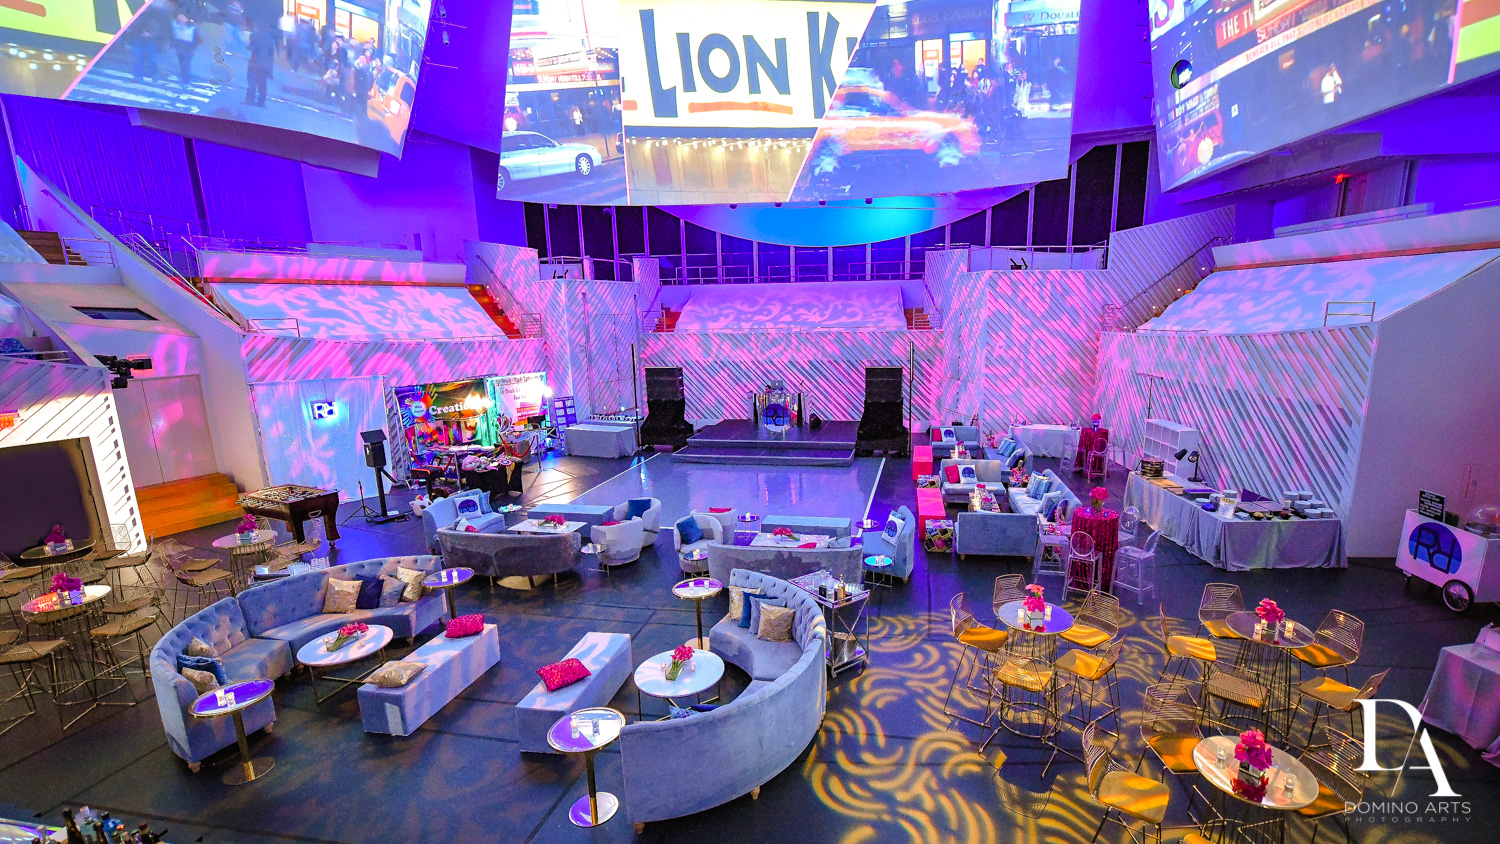 Amazing New York decor at Luxurious Broadway Theme Bat Mitzvah at New World Symphony in Miami Beach by Domino Arts Photography